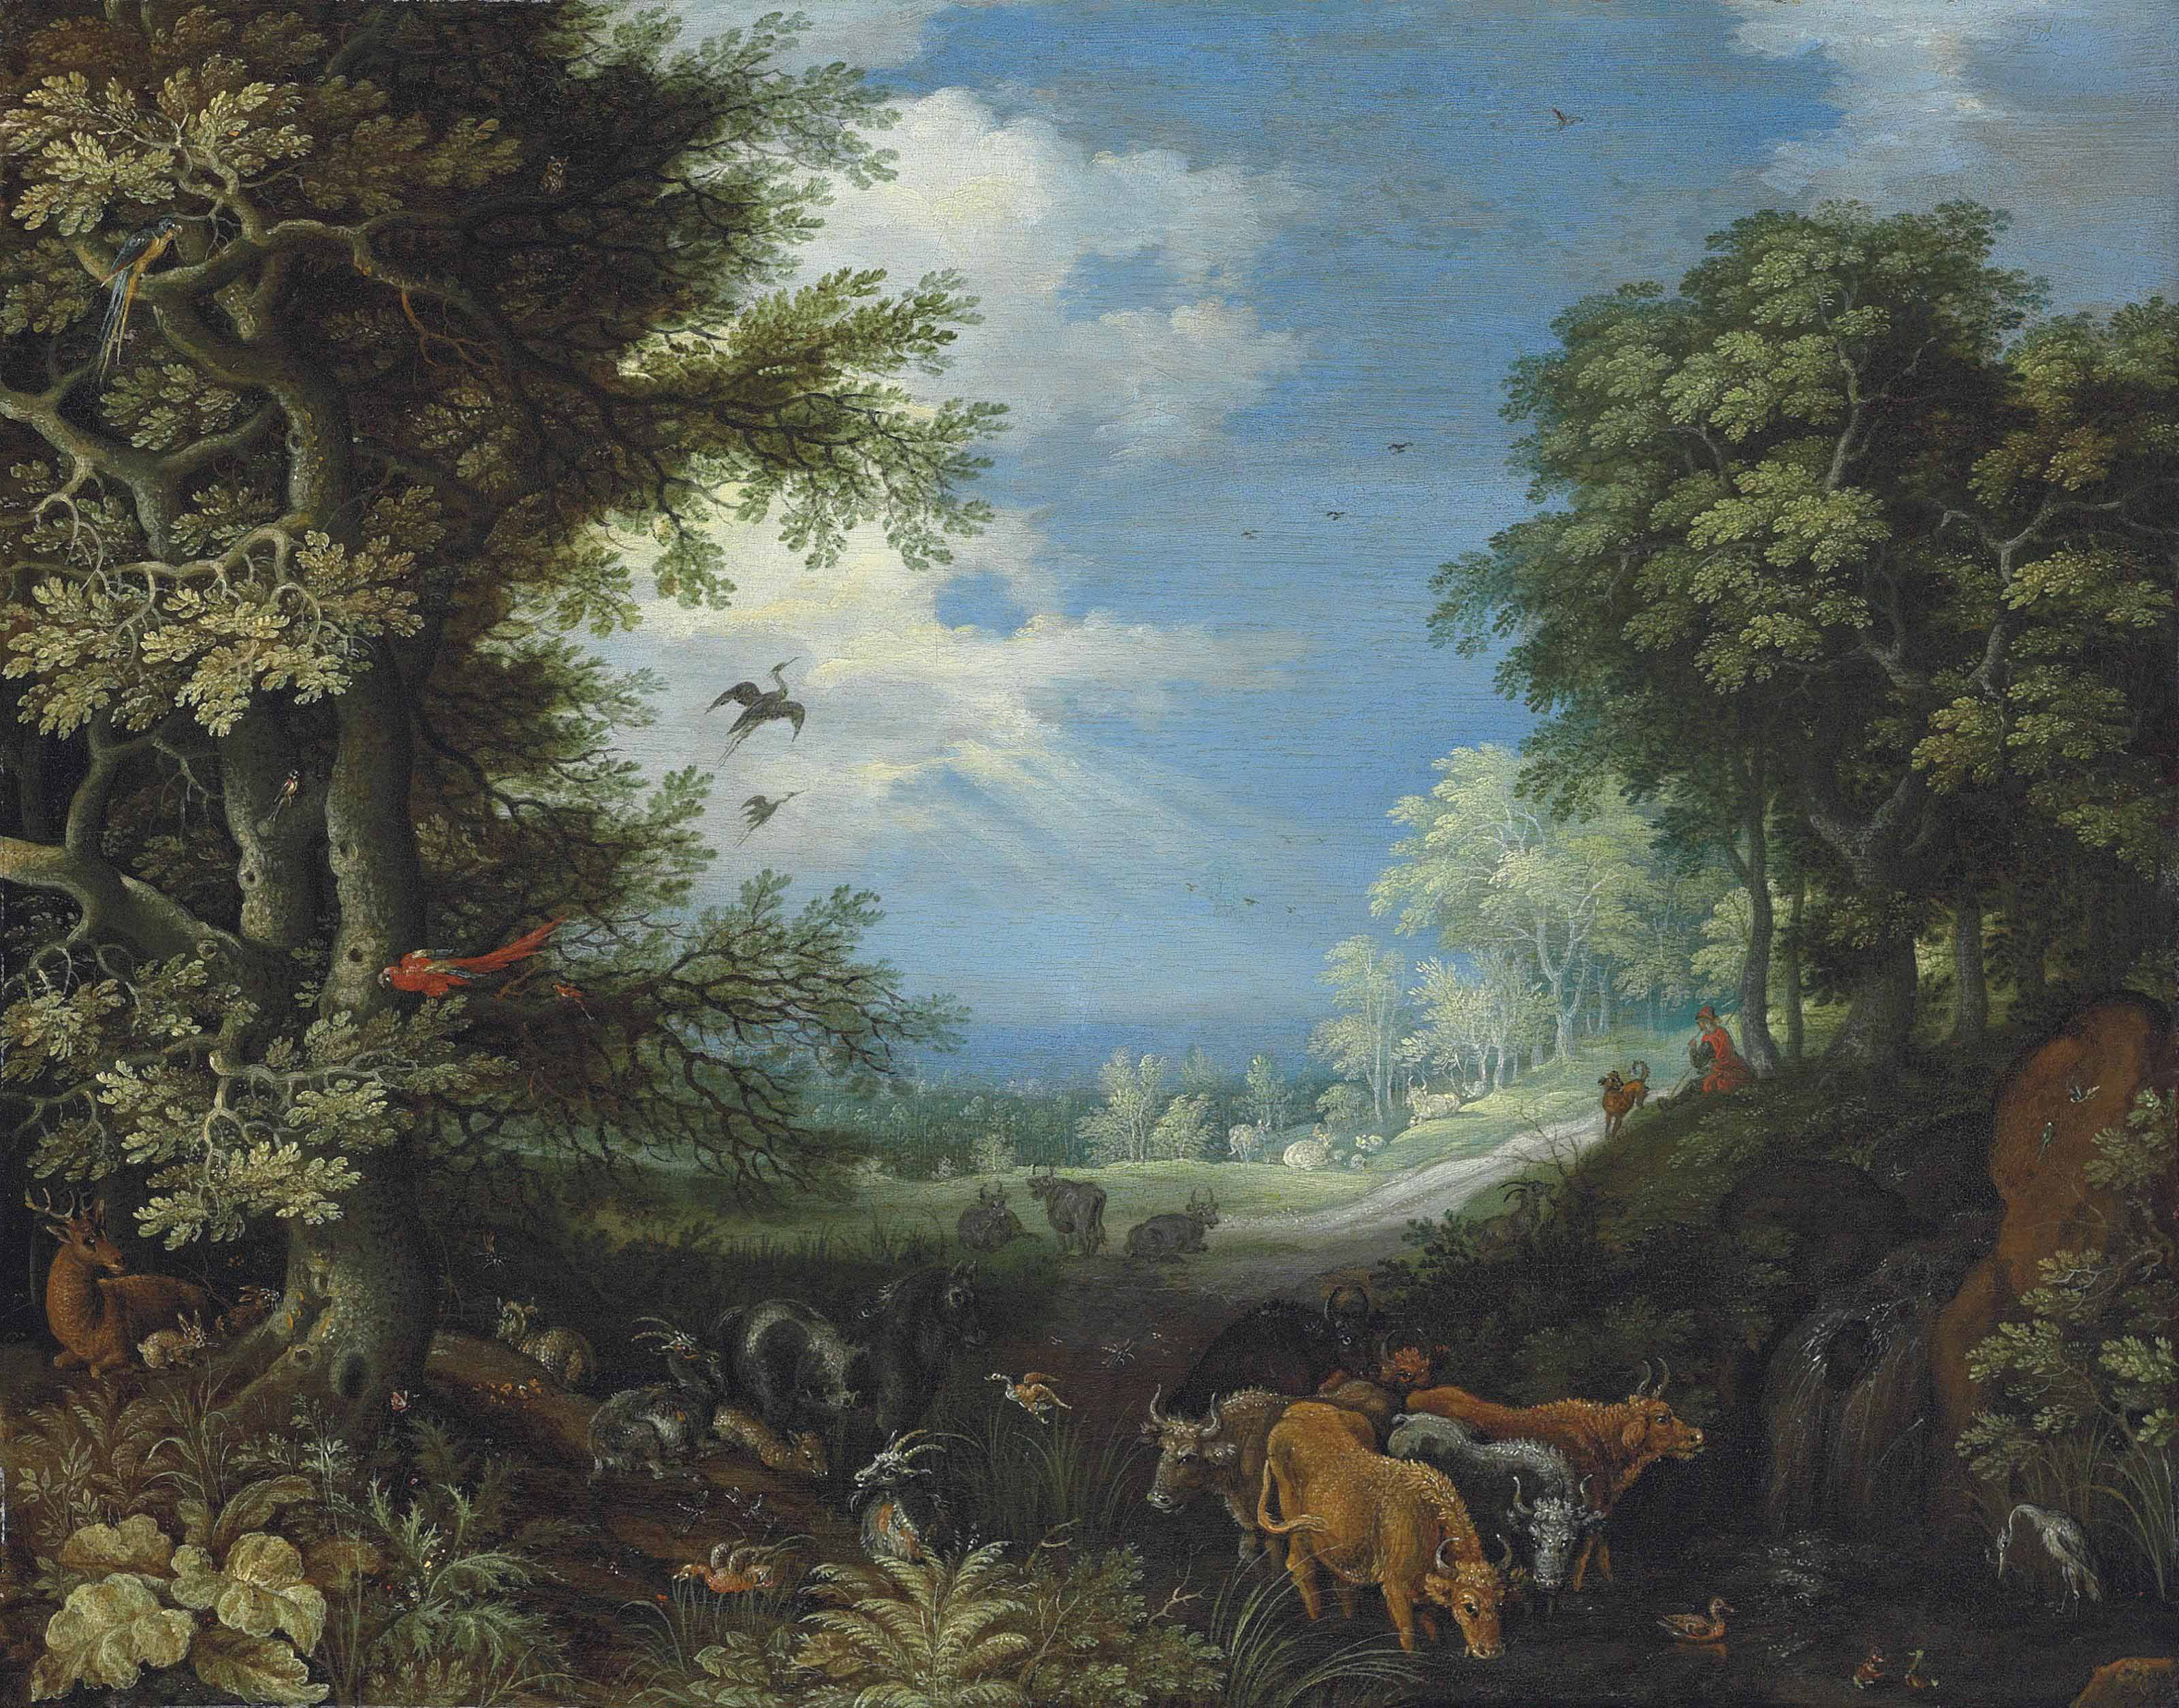 A wooded landscape with cattle, goats, a stag, ducks, a parrot and other birds, a herdsman and his dog beyond